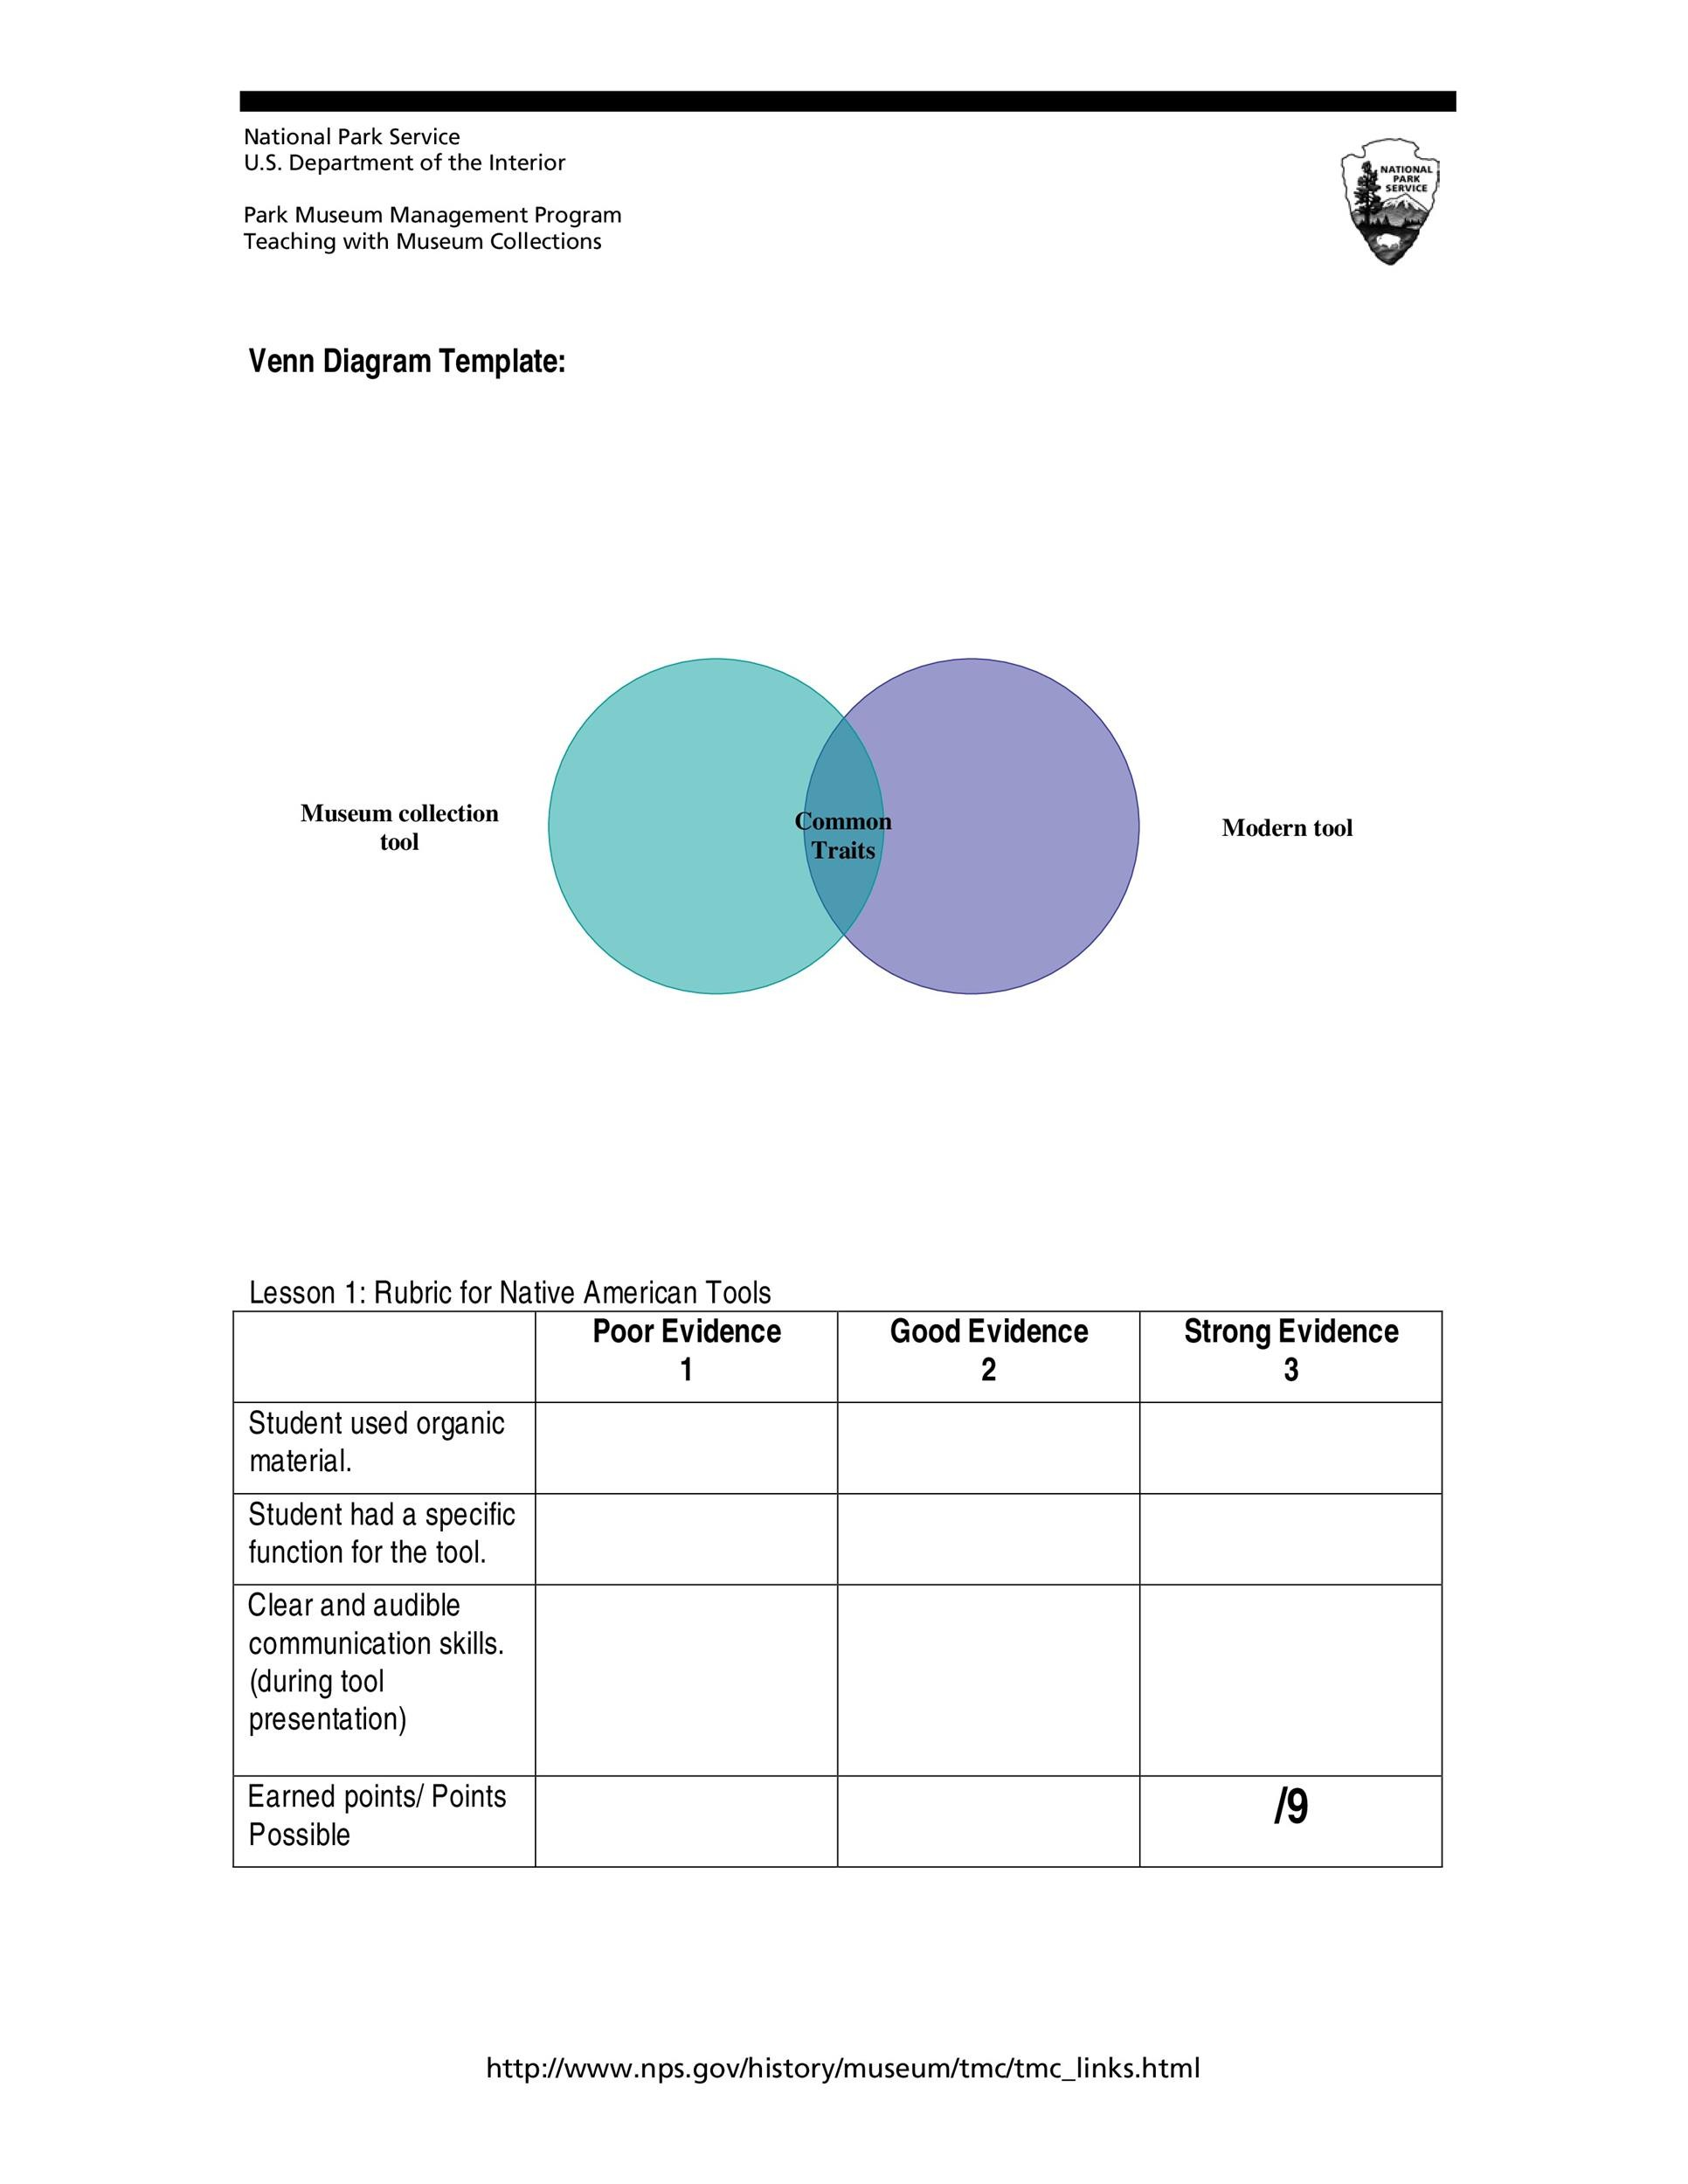 Free venn diagram template 33